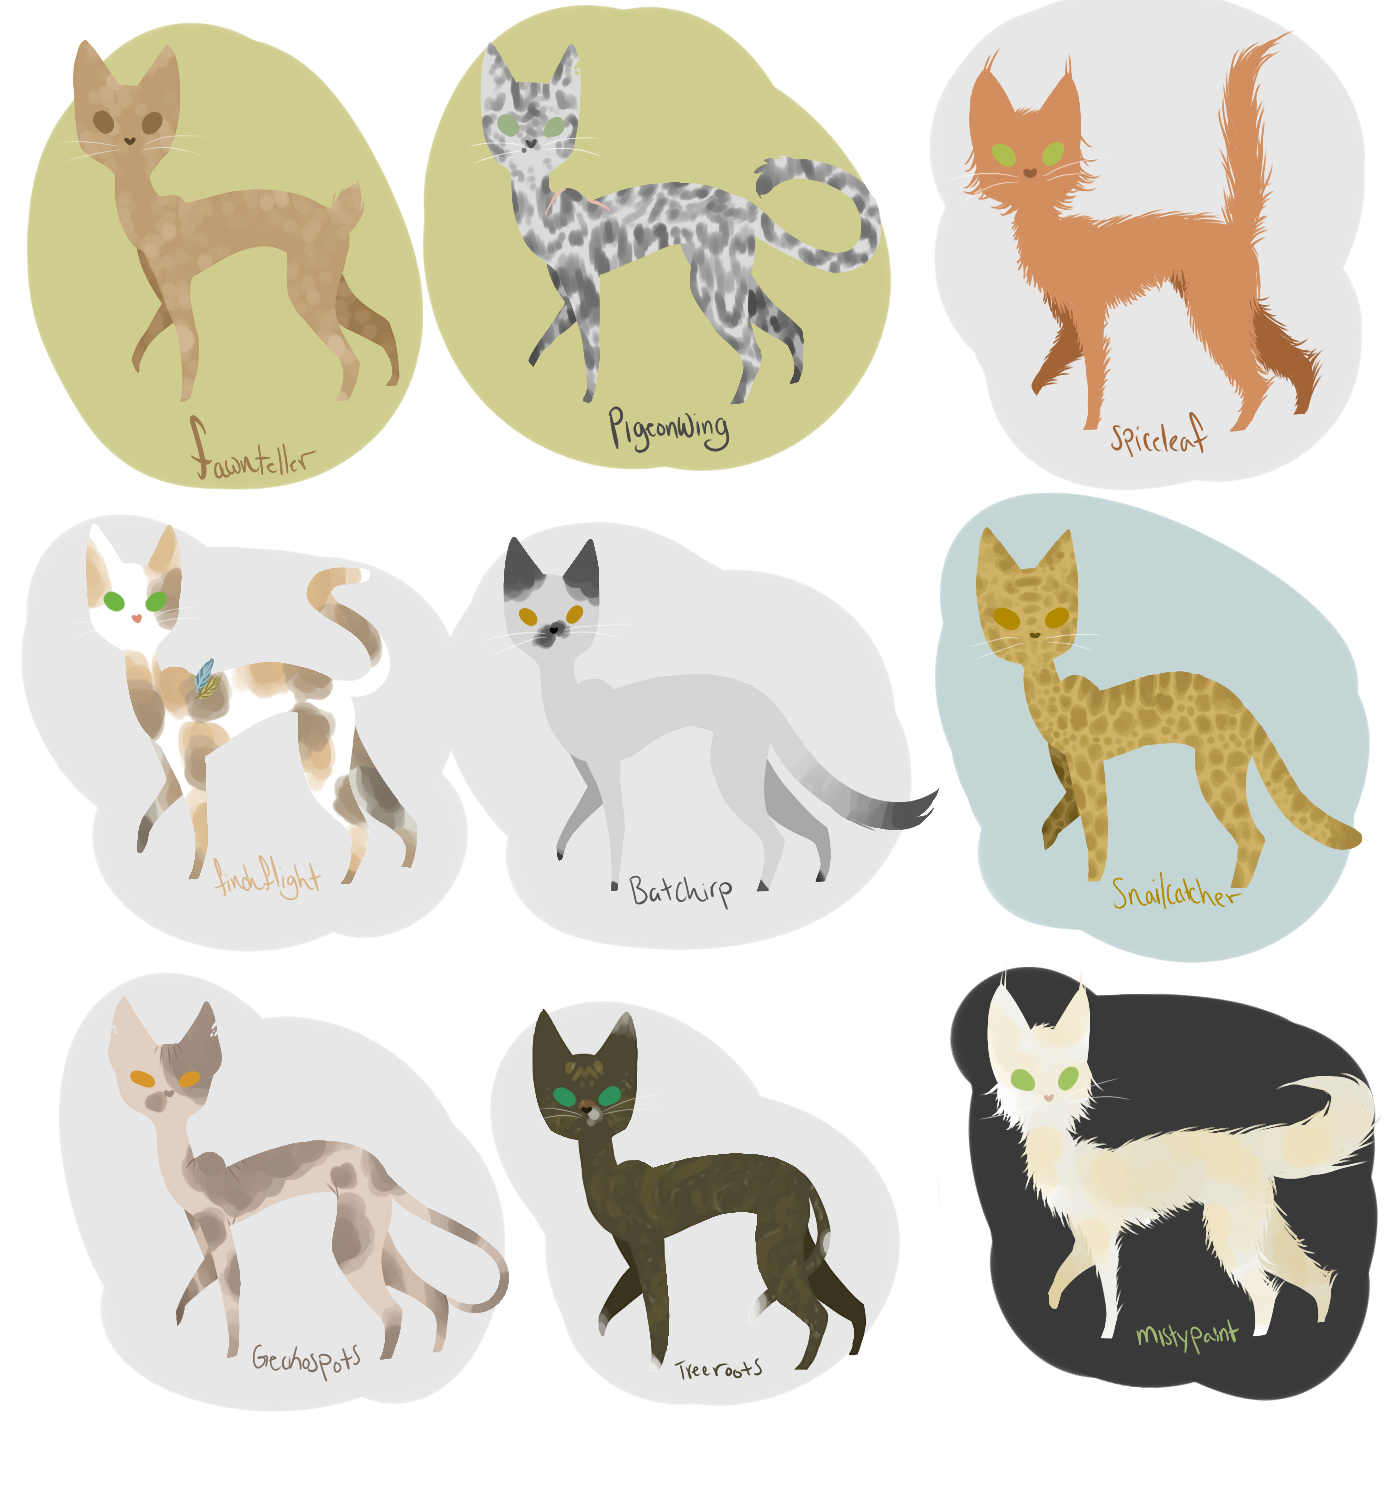 oh yknow just cats all drawn in the same pose